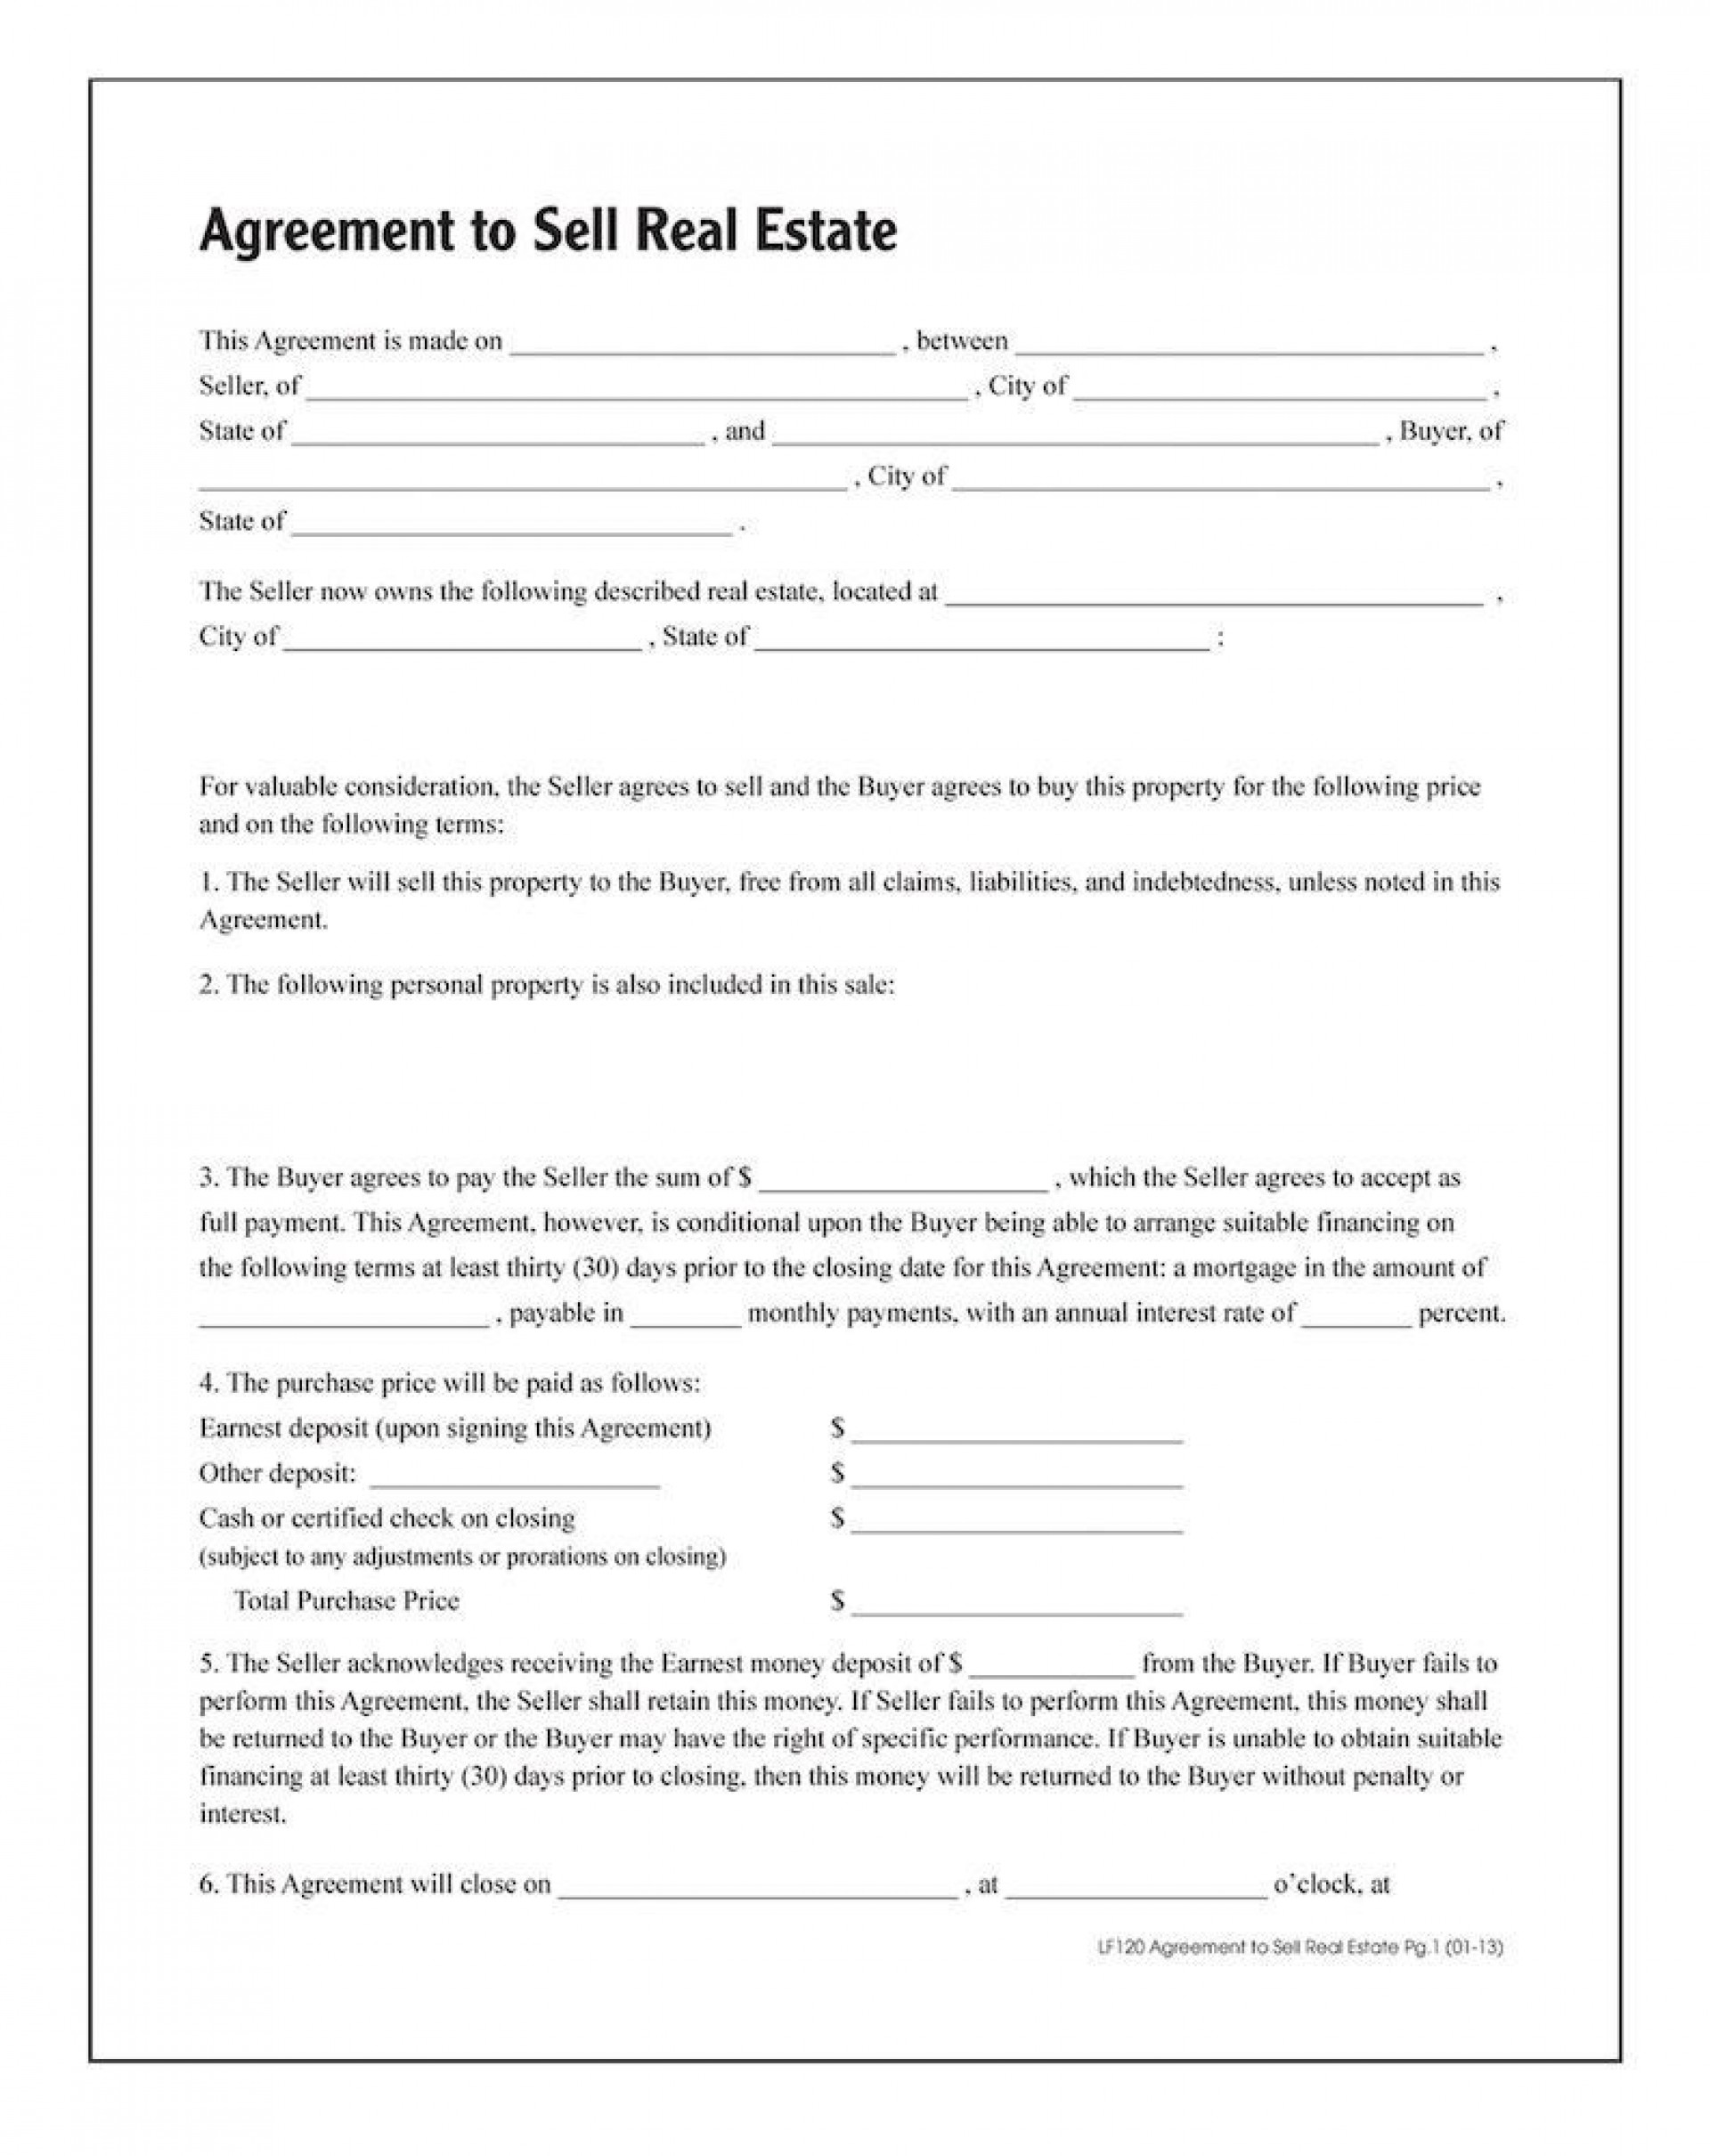 006 Stunning Real Estate Purchase Agreement Template High Definition  Contract California Minnesota British Columbia1920